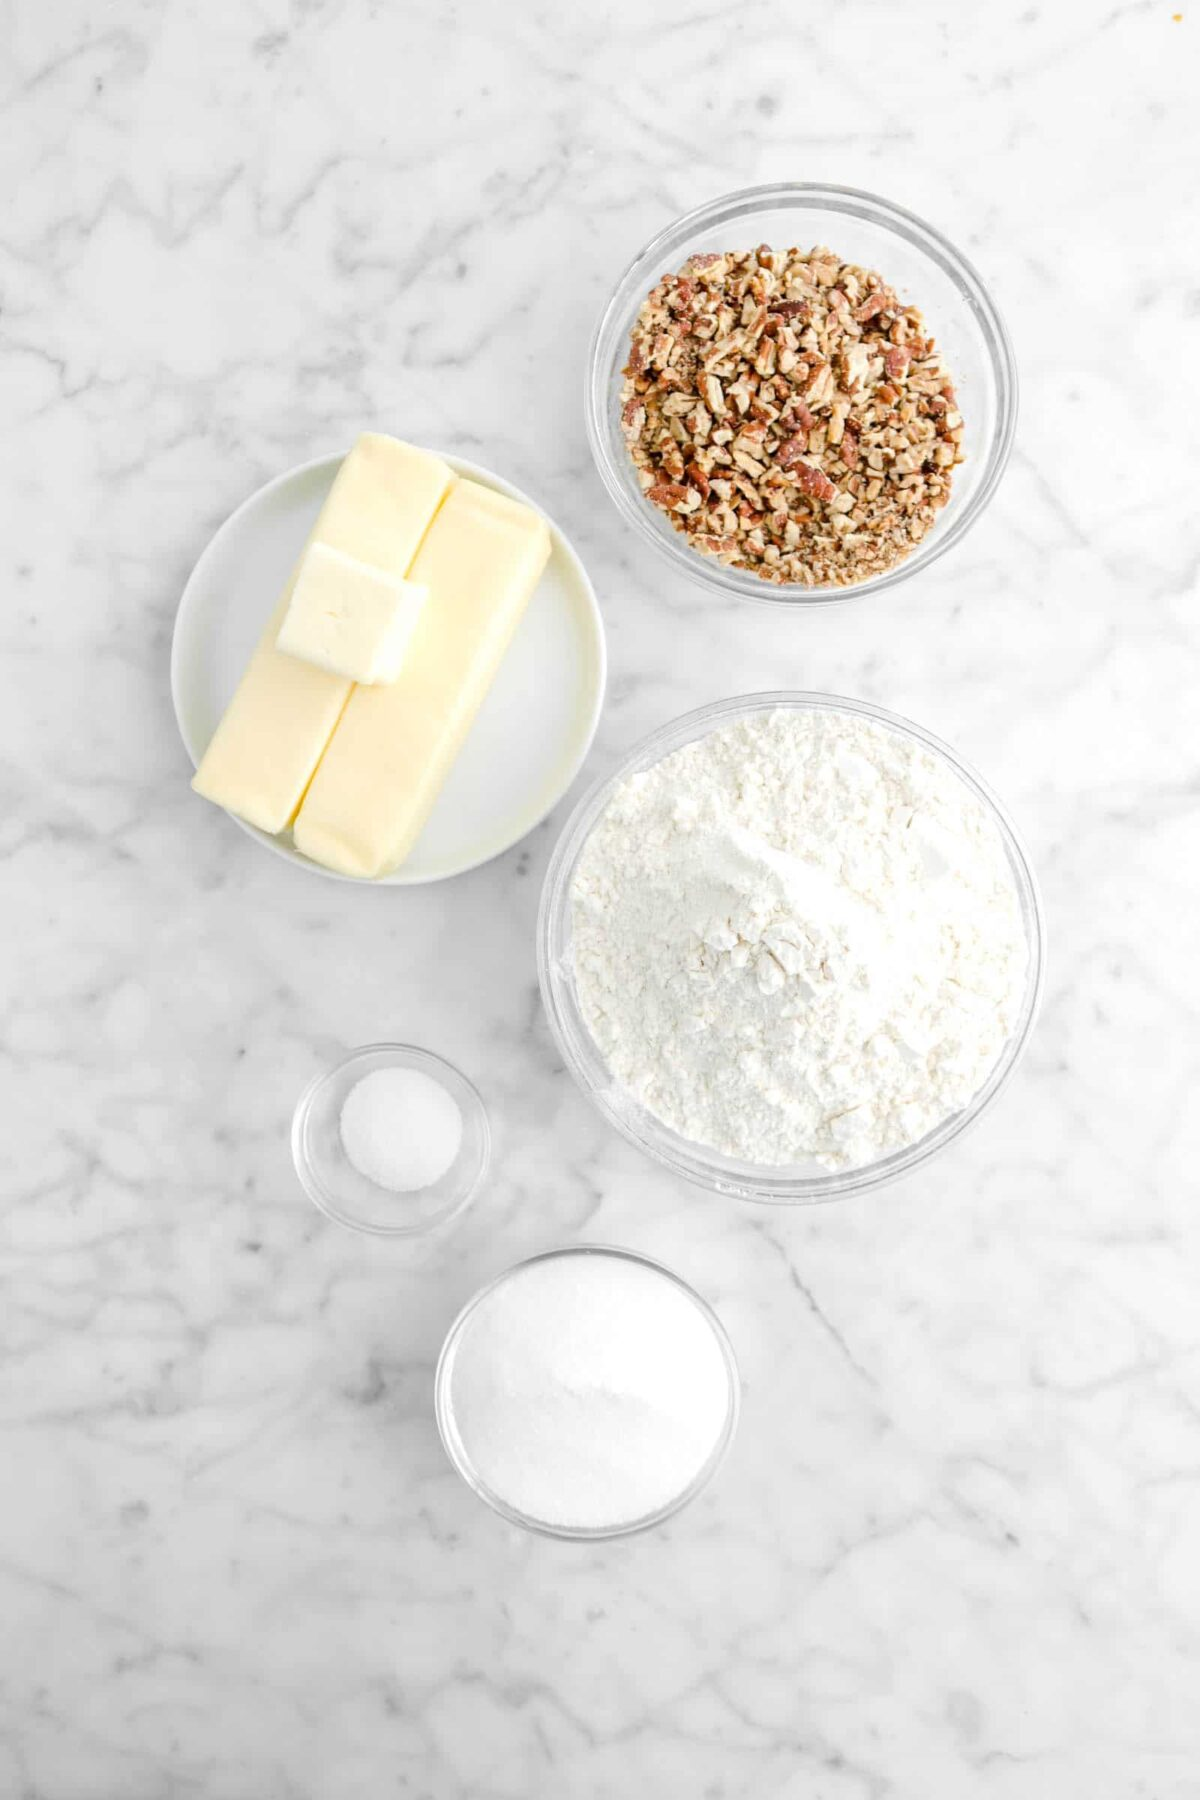 chopped pecans, butter, flour, salt, and sugar on marble counter